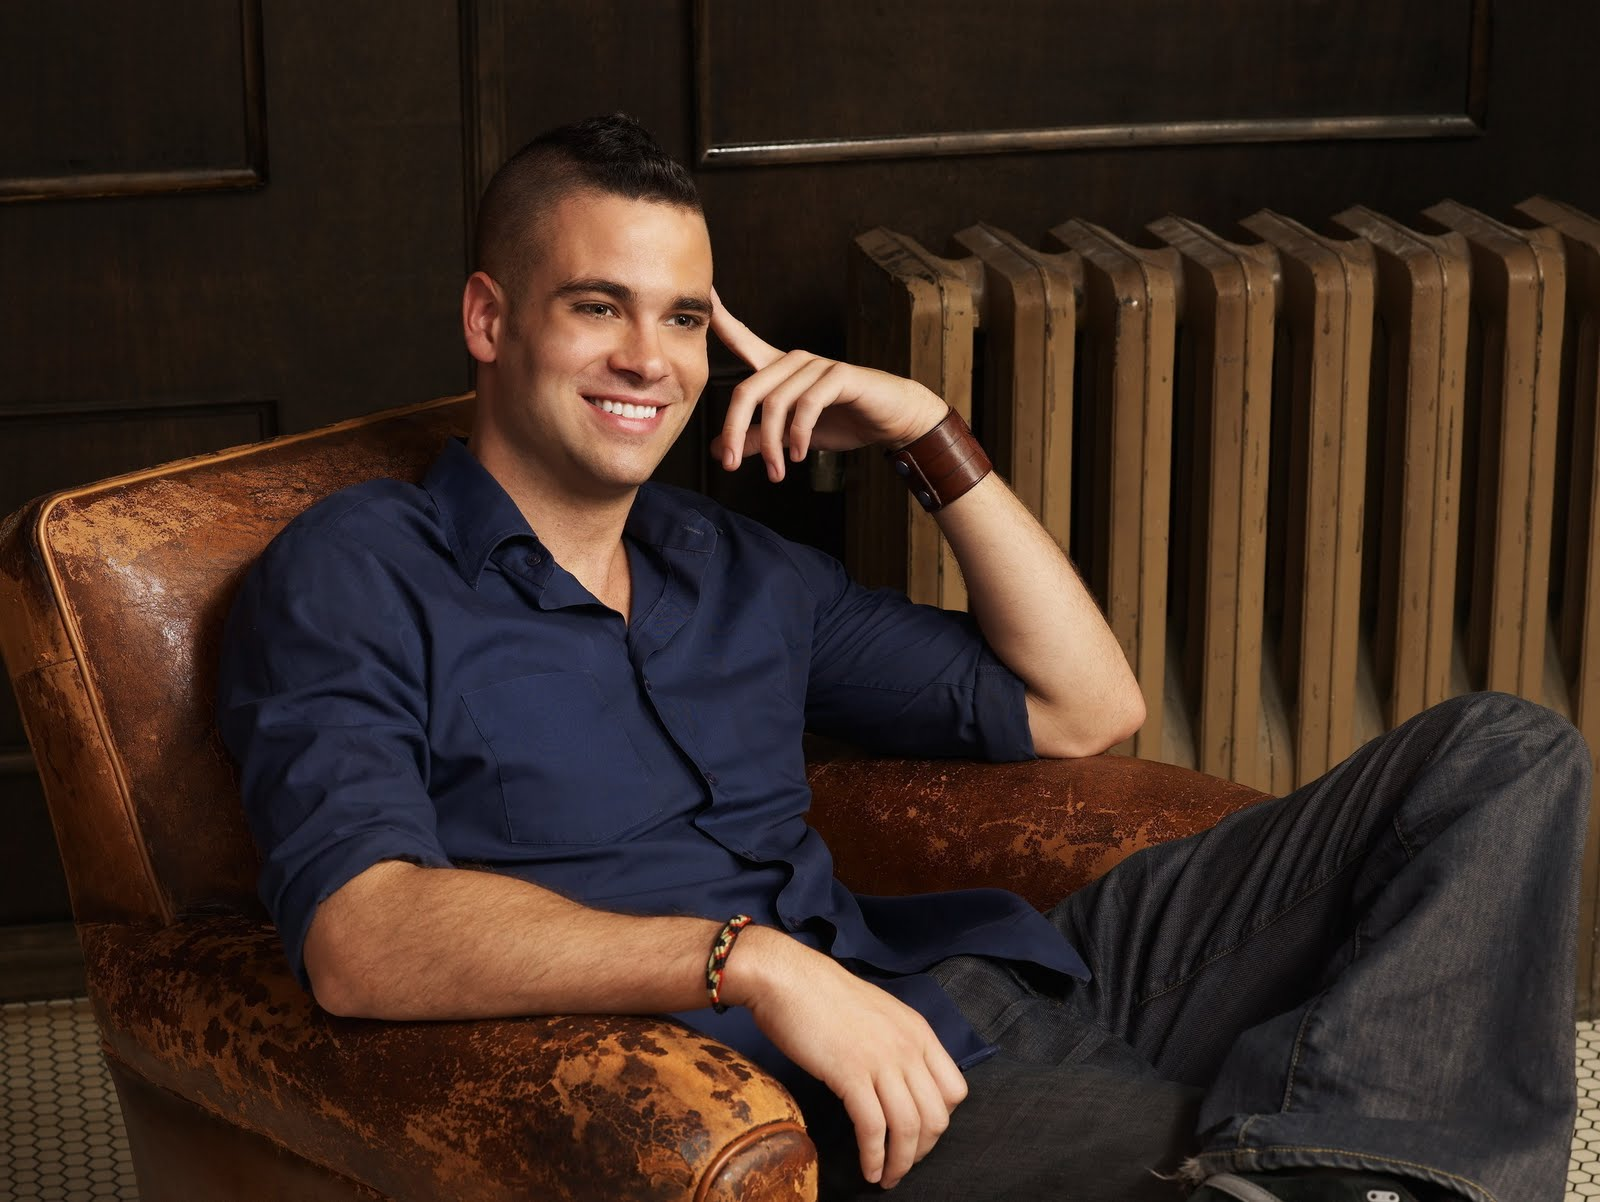 Mark Salling photo #229013